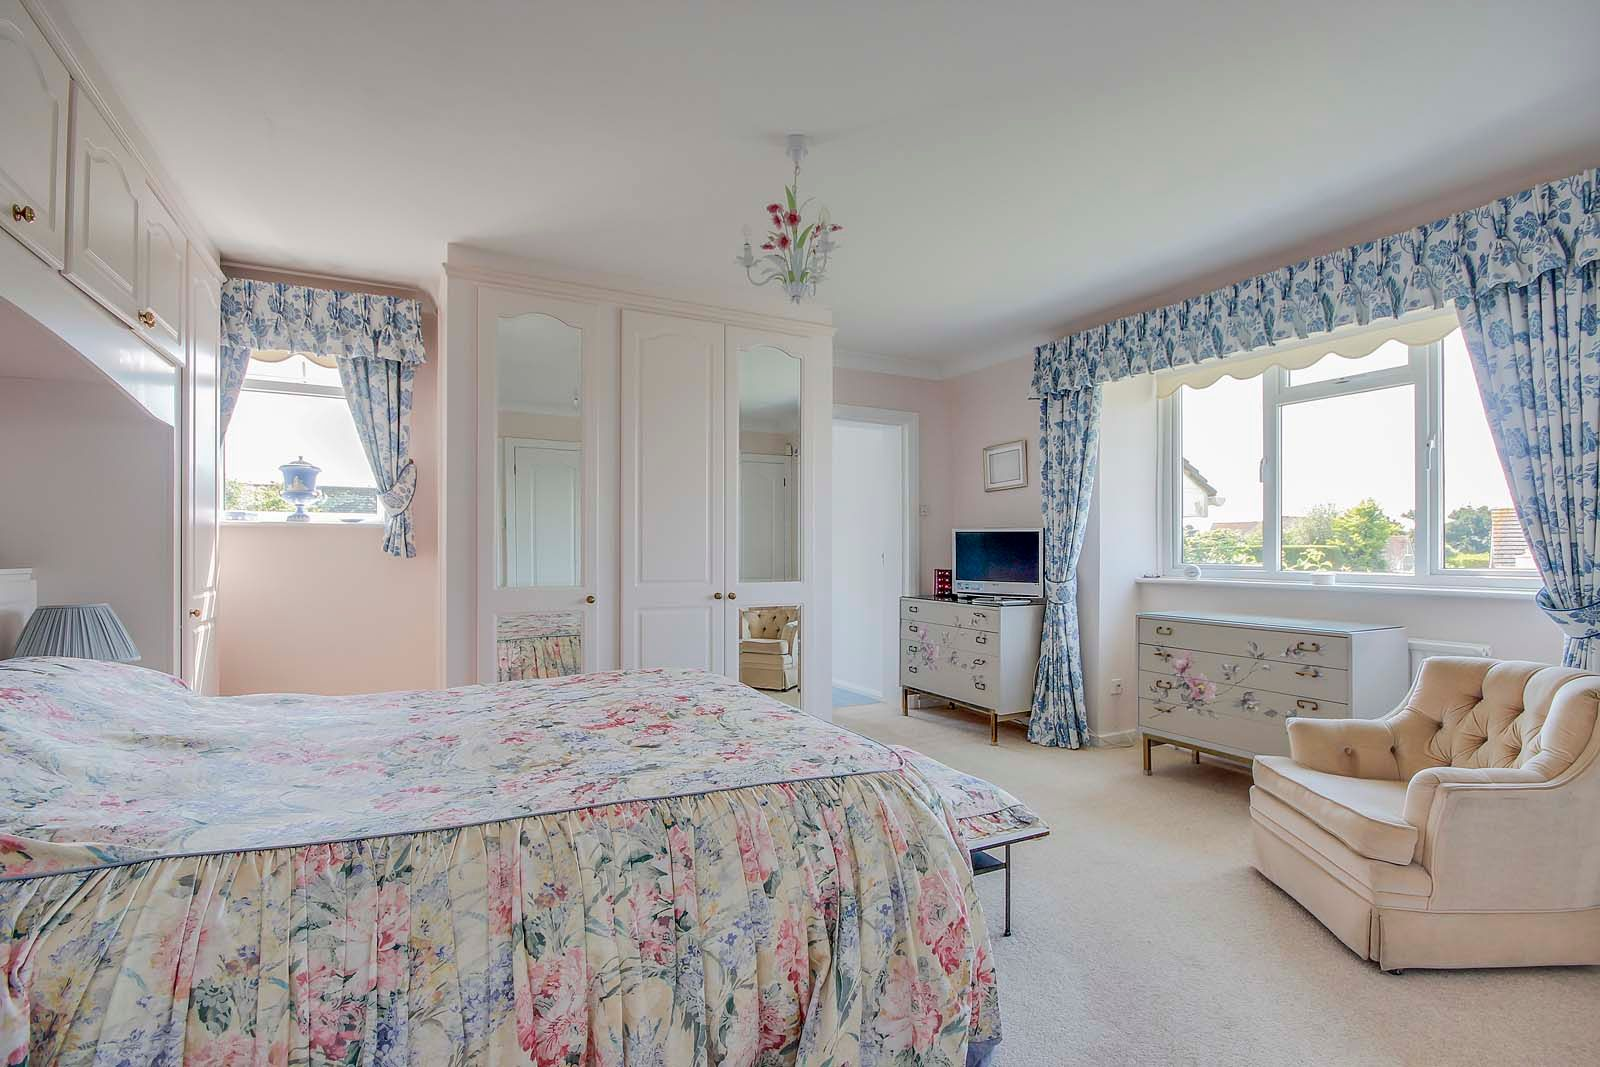 5 bed House for sale in The Willowhayne, East Preston - Bedroom (Property Image 9)